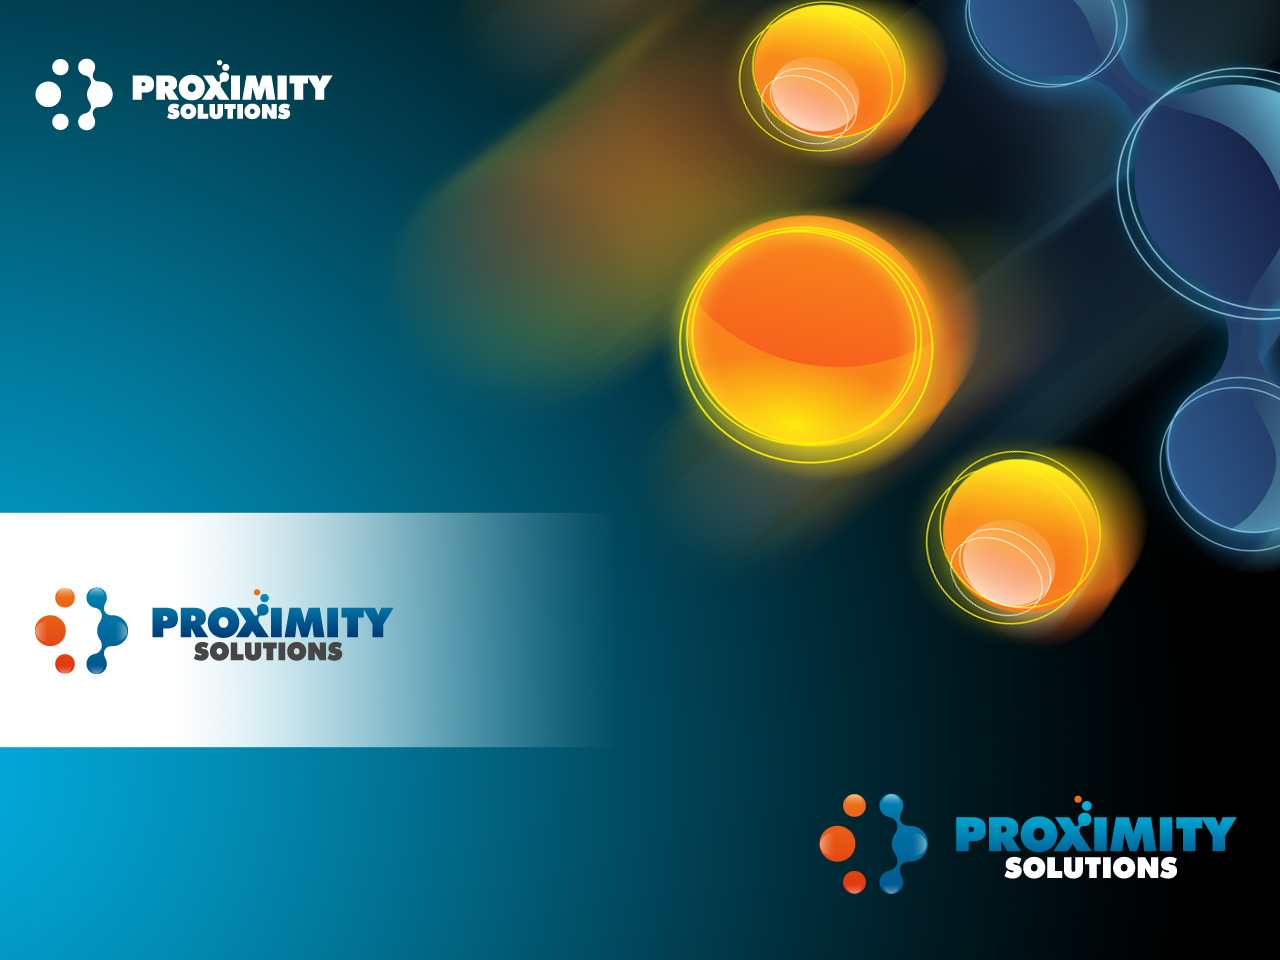 Logo Design by jpbituin - Entry No. 138 in the Logo Design Contest New Logo Design for Proximity Solutions.